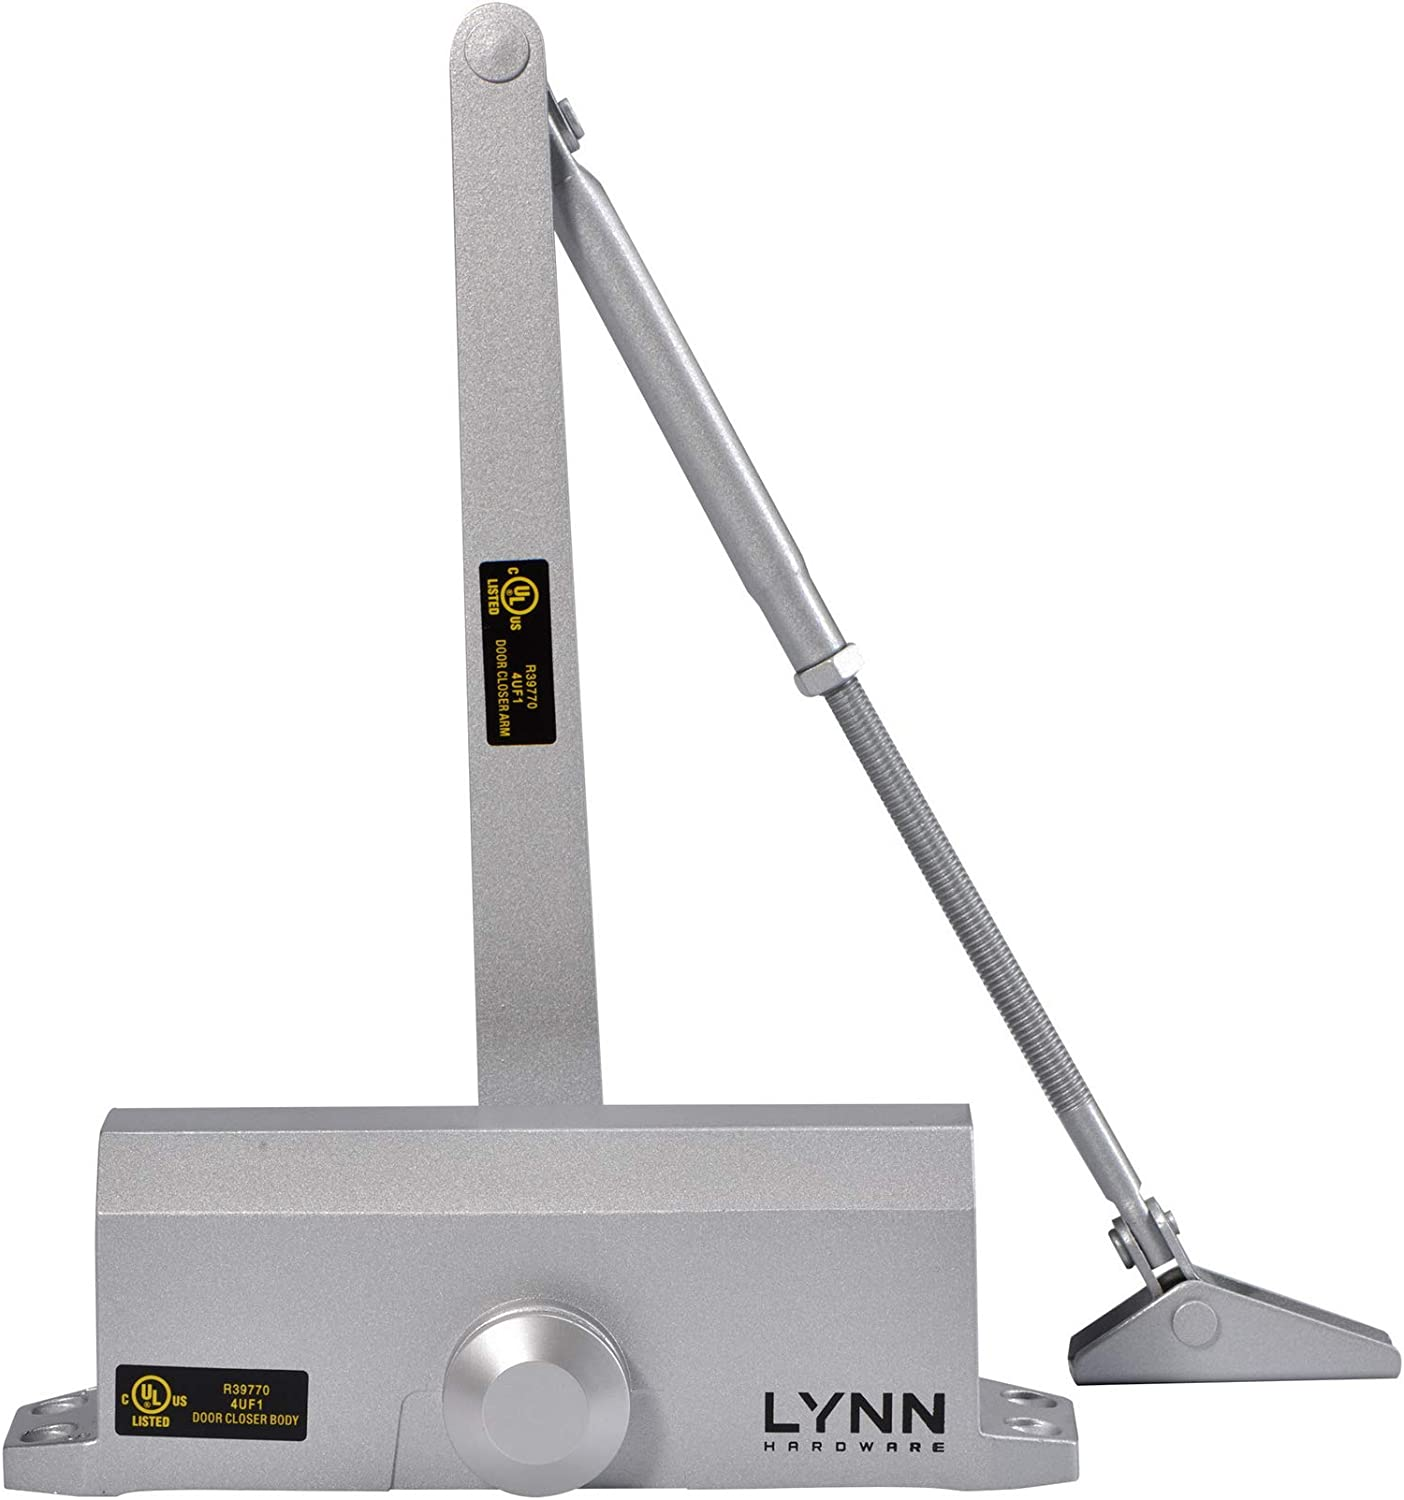 US26D Aluminum Surface Mounted Cast Aluminum Light//Medium Duty Commercial Door Closer LYNN HDWR #LH5003 UL 3 Hour Fire Rated Size 3 for Residential and Light Commercial Doors